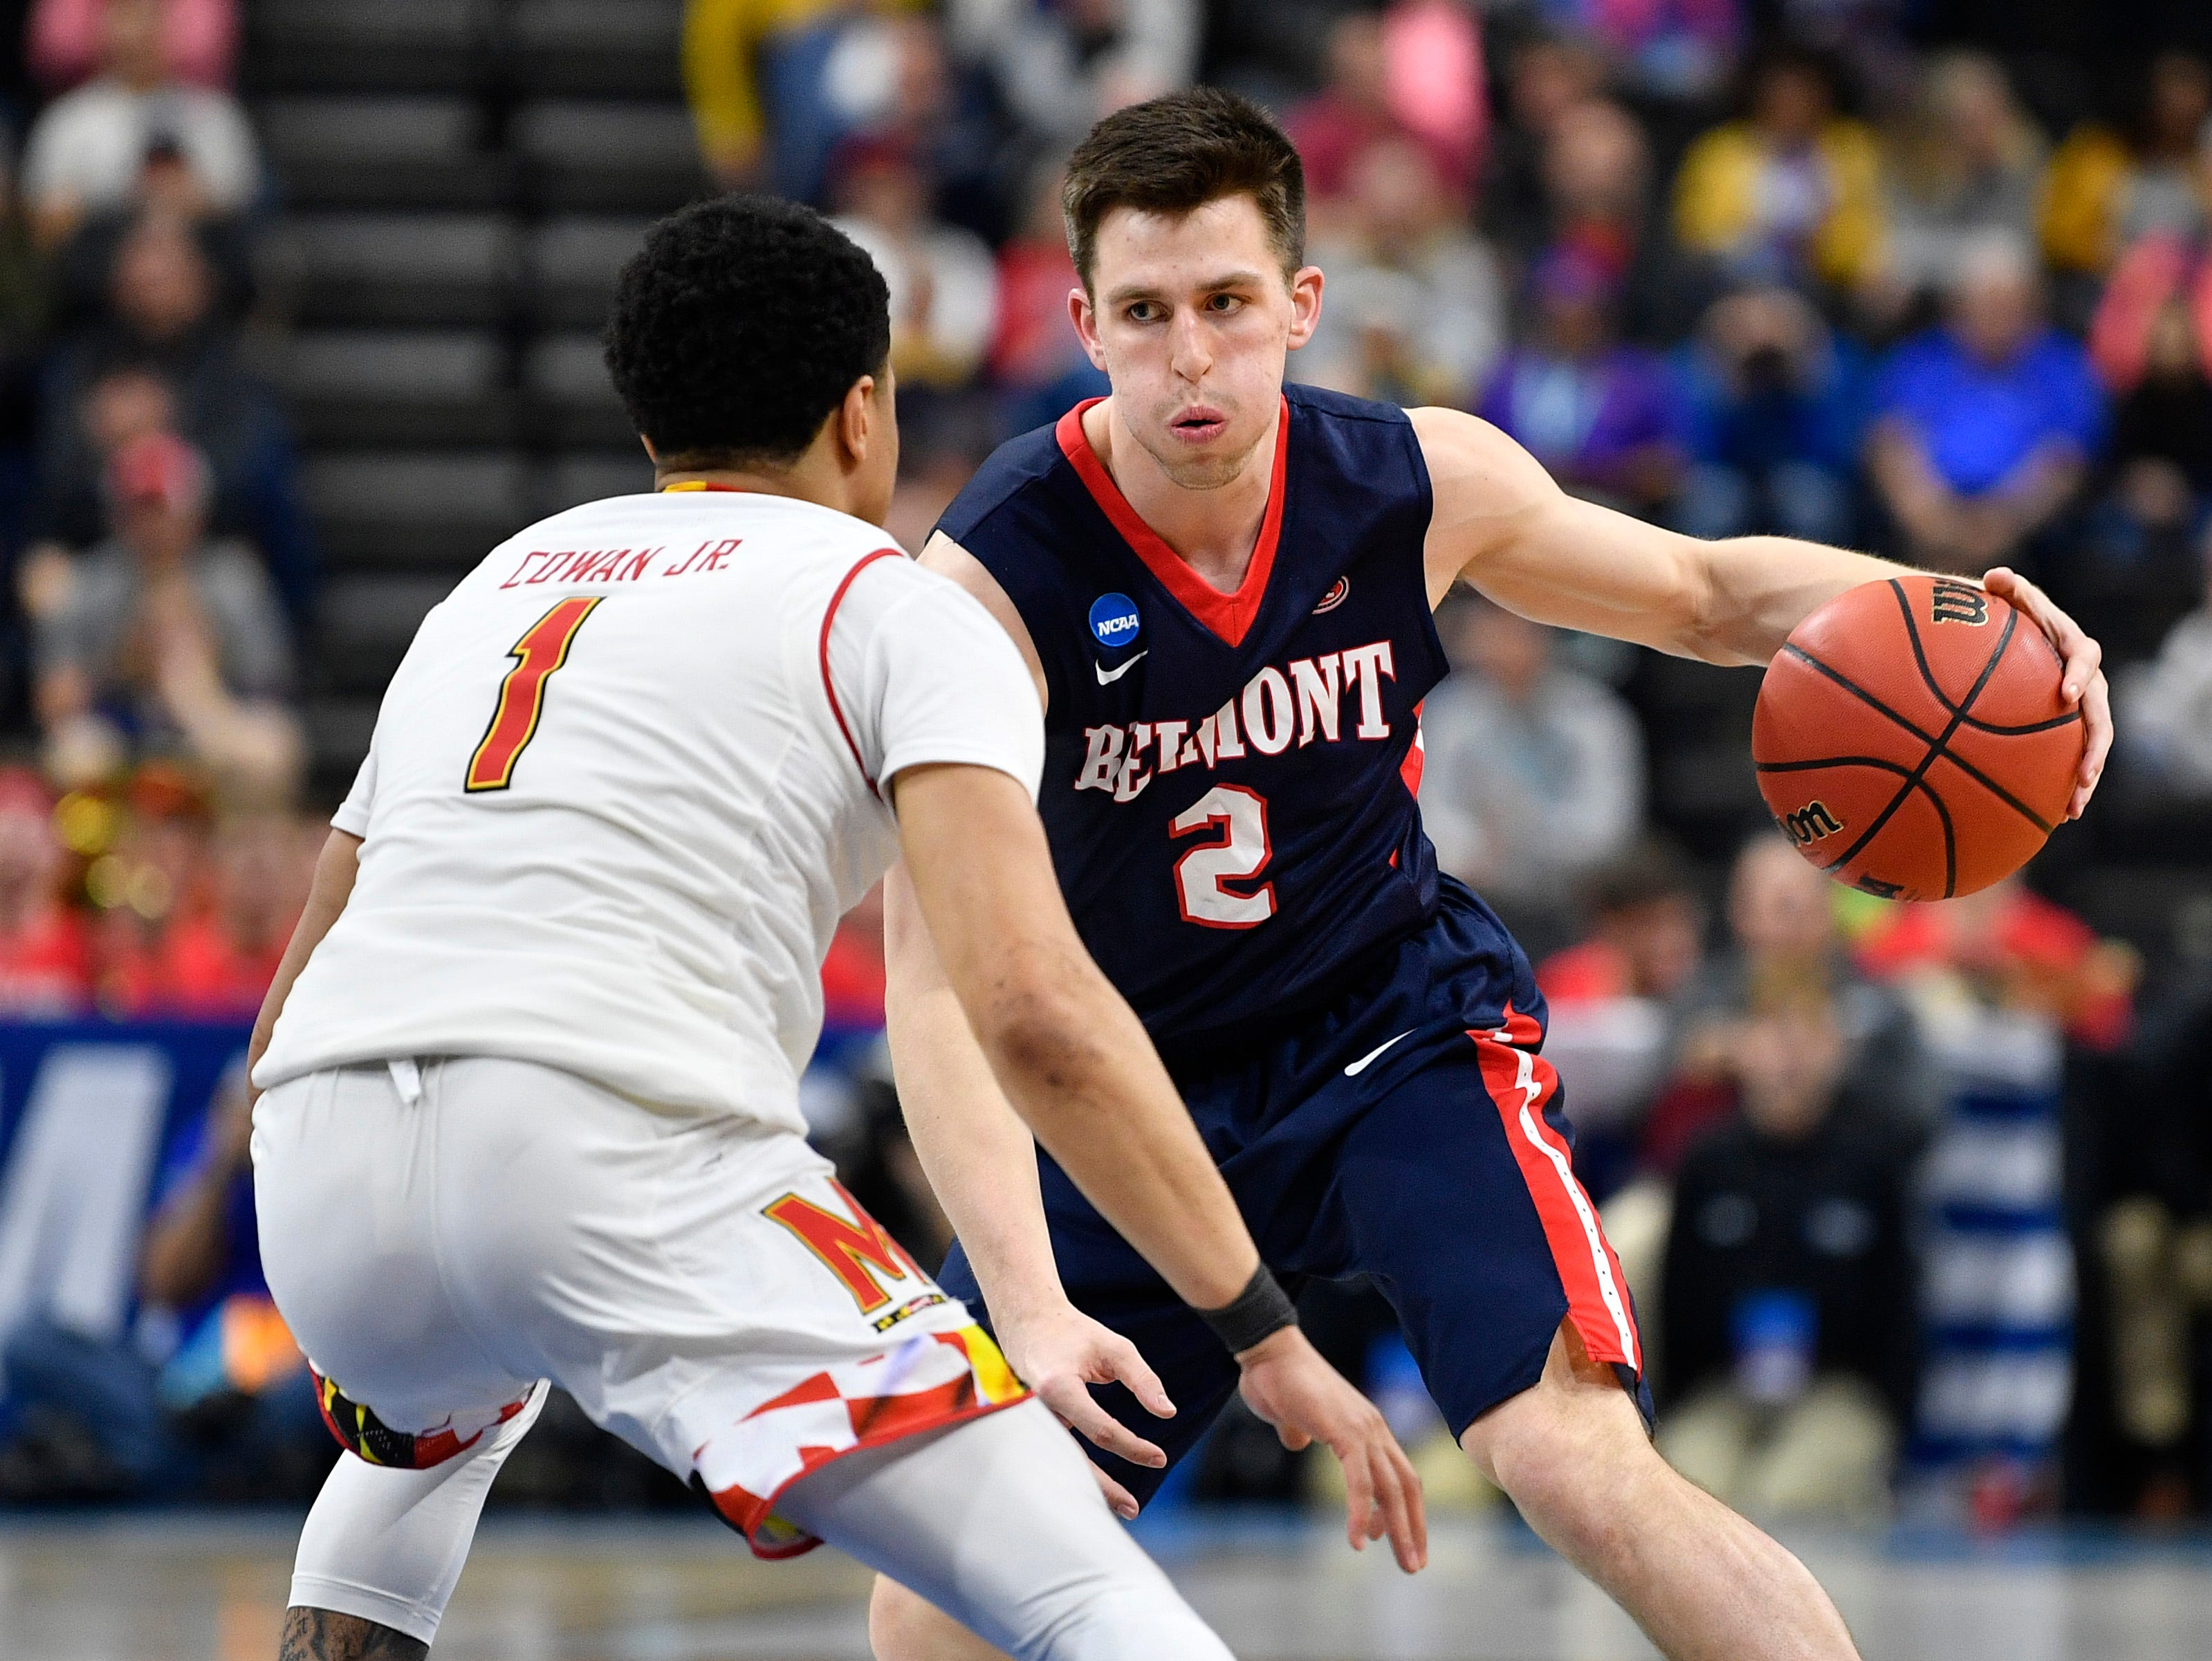 Belmont guard Grayson Murphy (2) looks for an opening past Maryland guard Anthony Cowan Jr. (1) during the second half of the first-round NCAA college basketball tournament game at VyStar Veterans Memorial Arena in Jacksonville, Fla., Thursday, March 21, 2019.